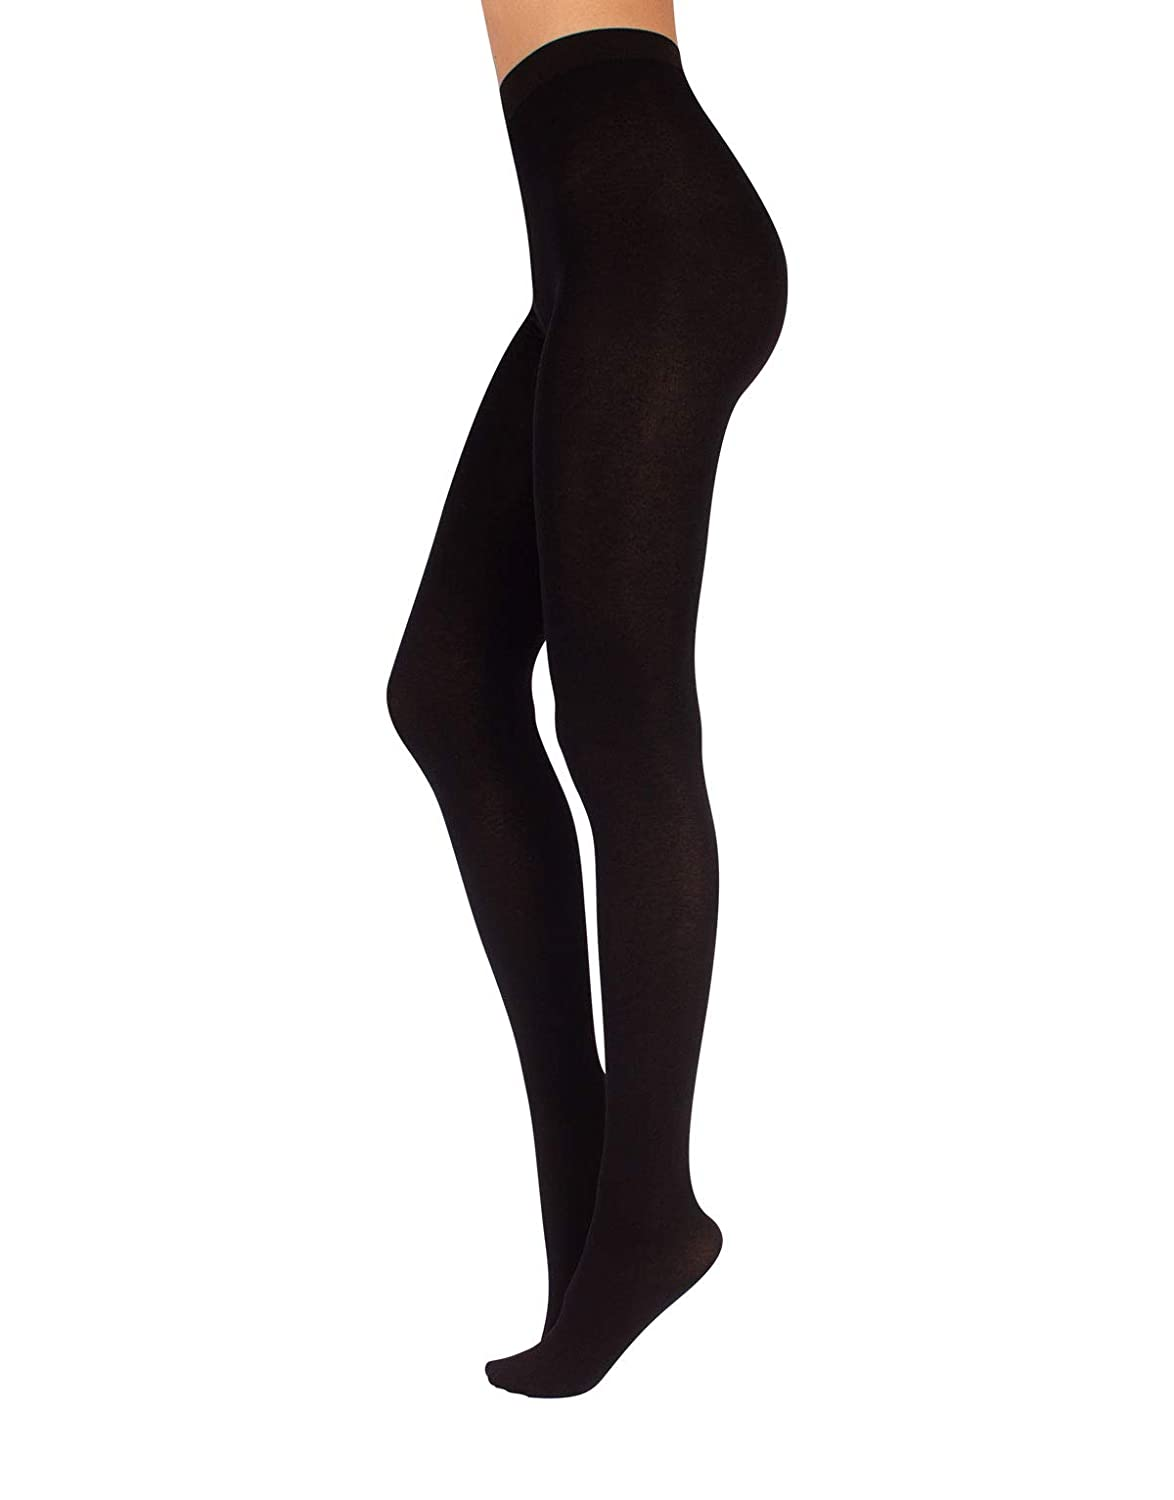 074d93172e951 CASHMERE WOOL TIGHTS | WARM WINTER PANTYHOSE | THICK TIGHTS | 150 DEN | S M  L XL | ITALIAN HOSIERY